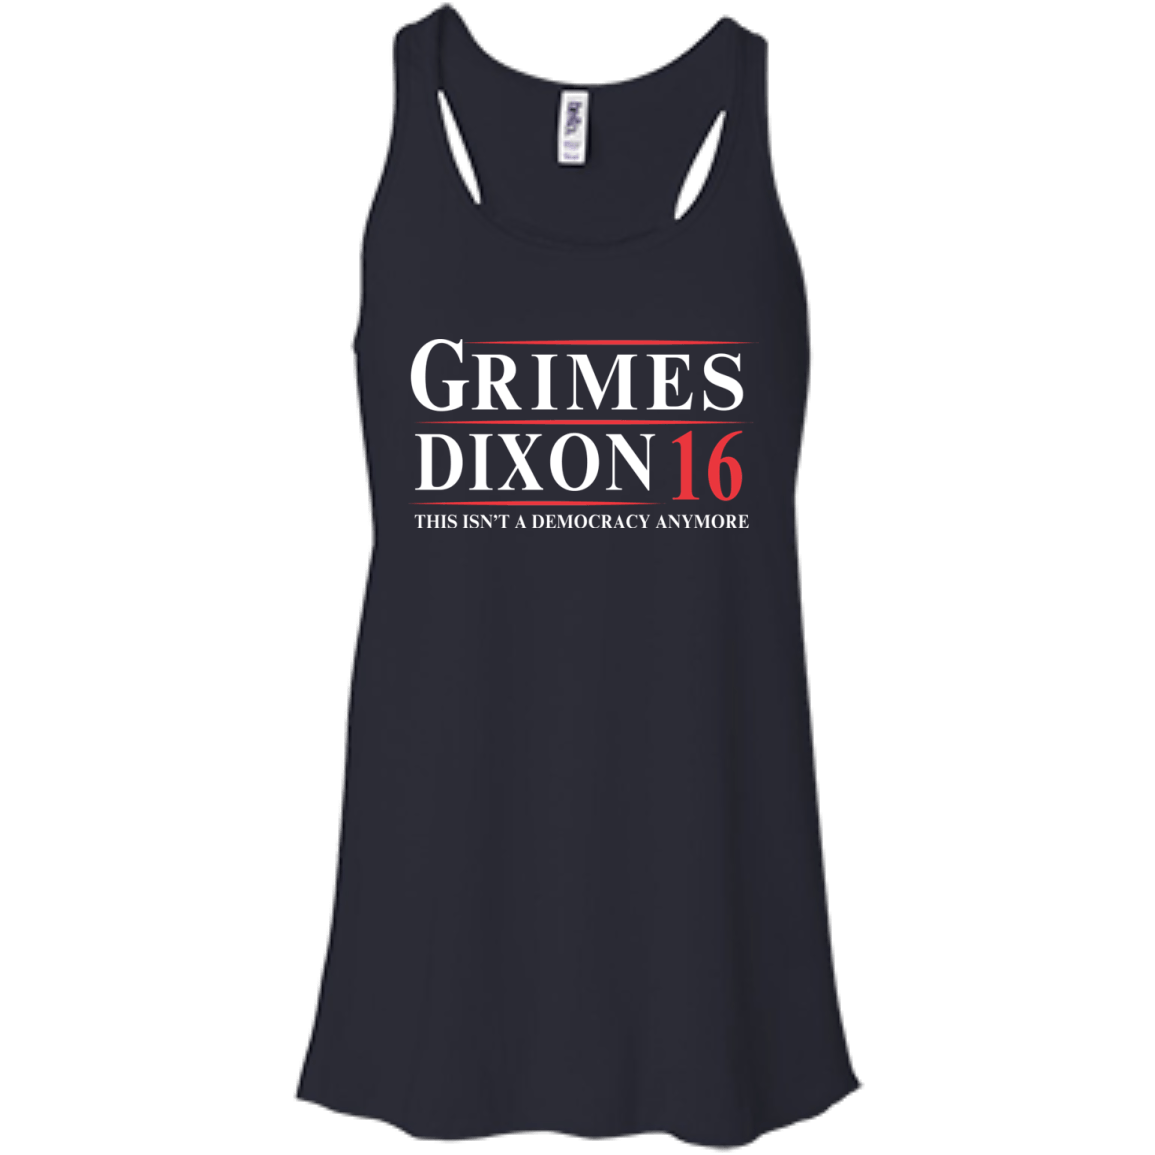 Grimes Dixon for president 2016 t shirt & hoodies